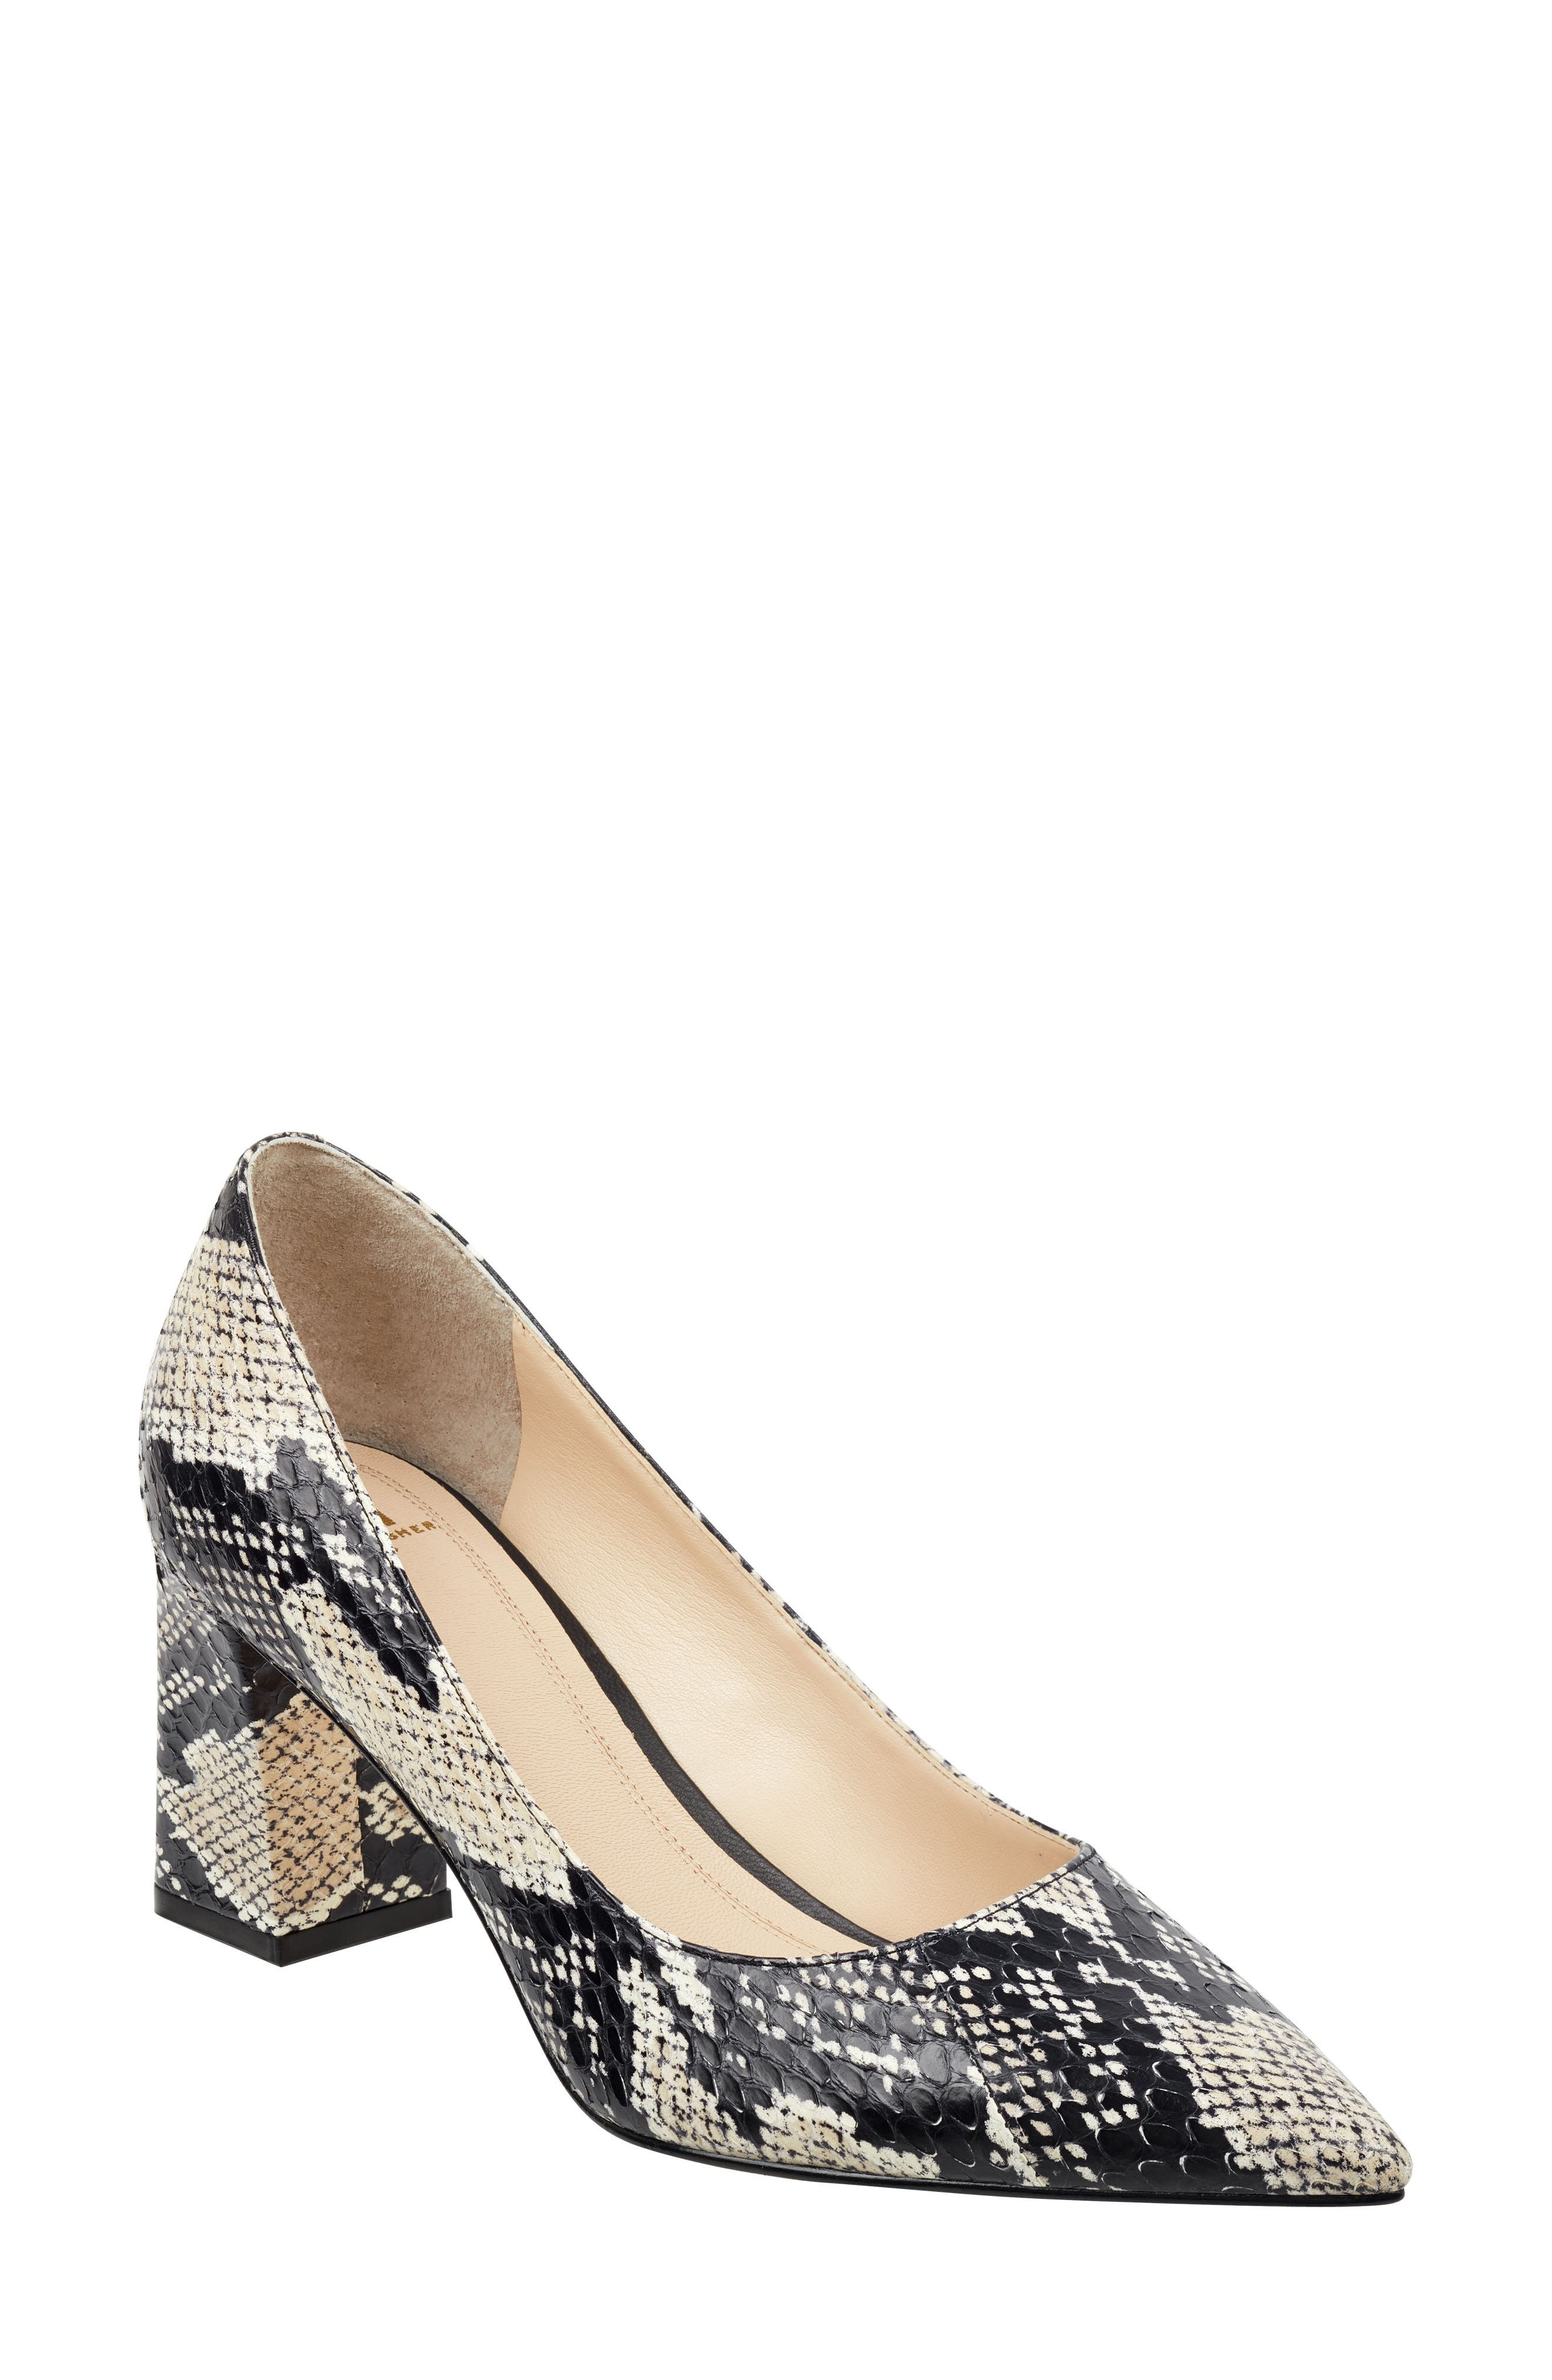 'Zala' Pump,                         Main,                         color, 009